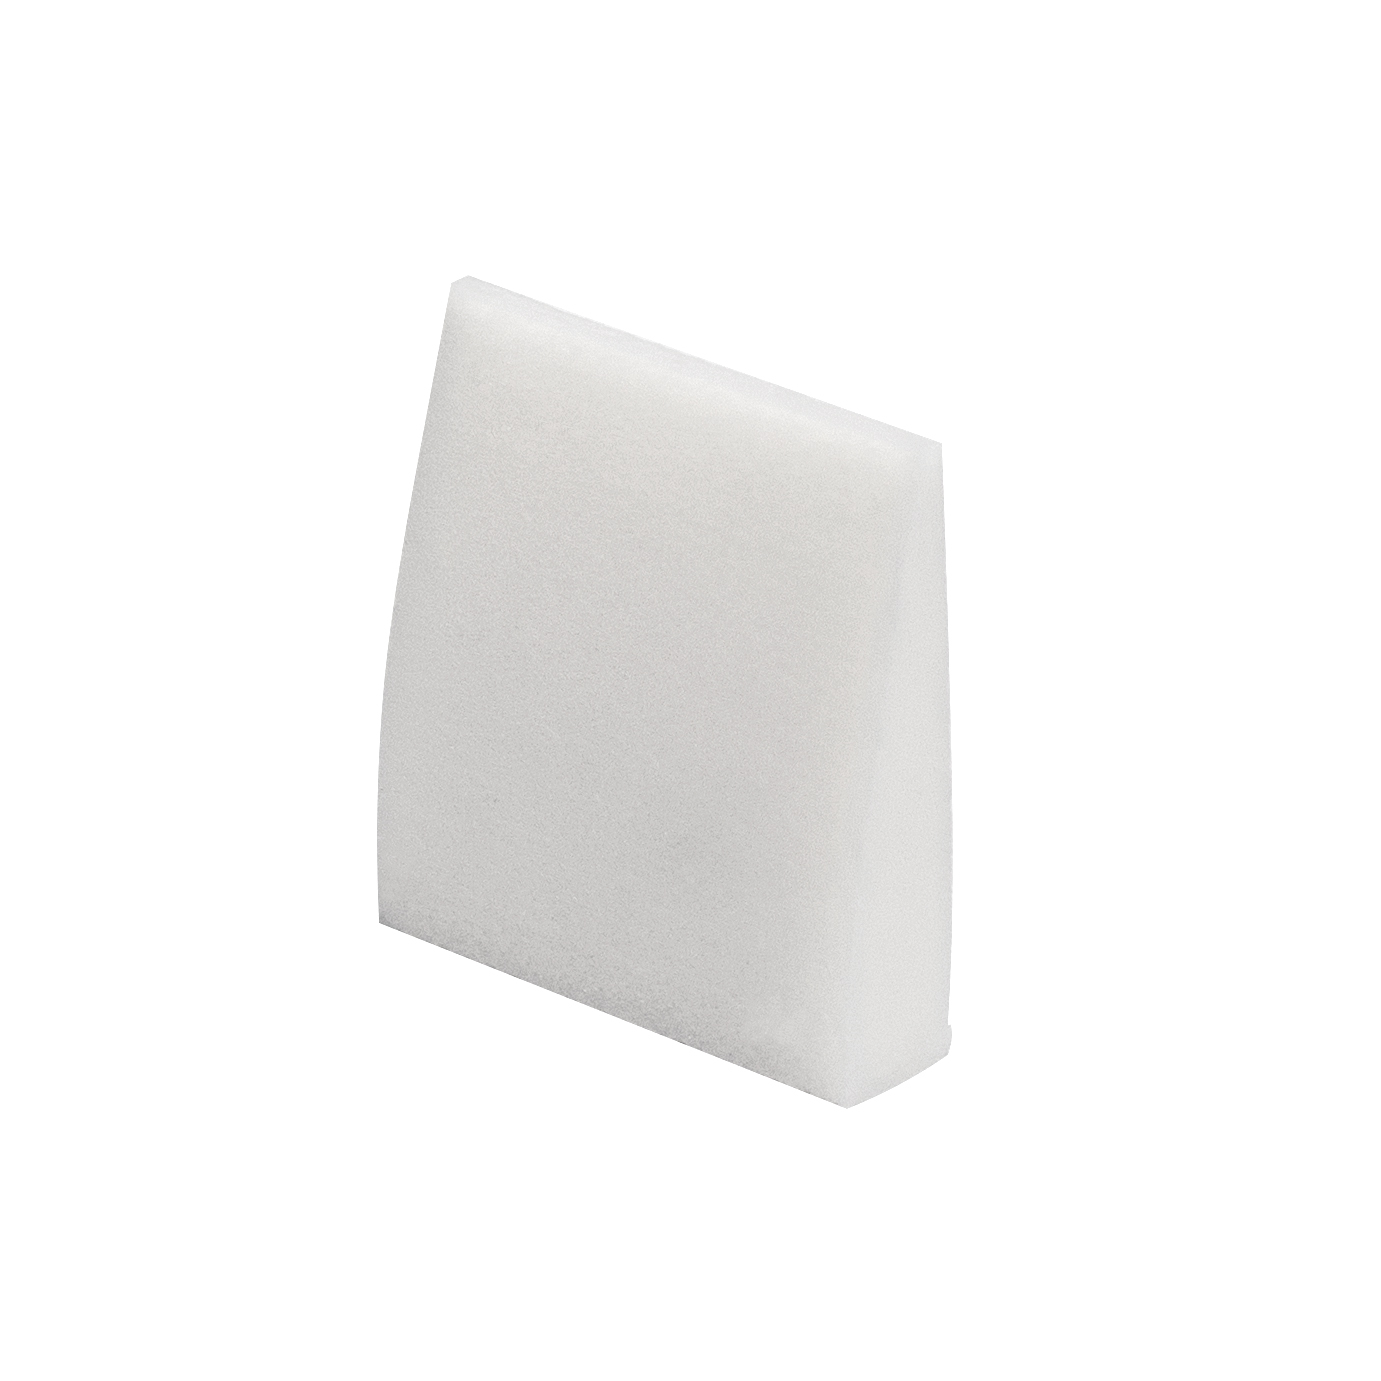 Wedge Tile Spacers